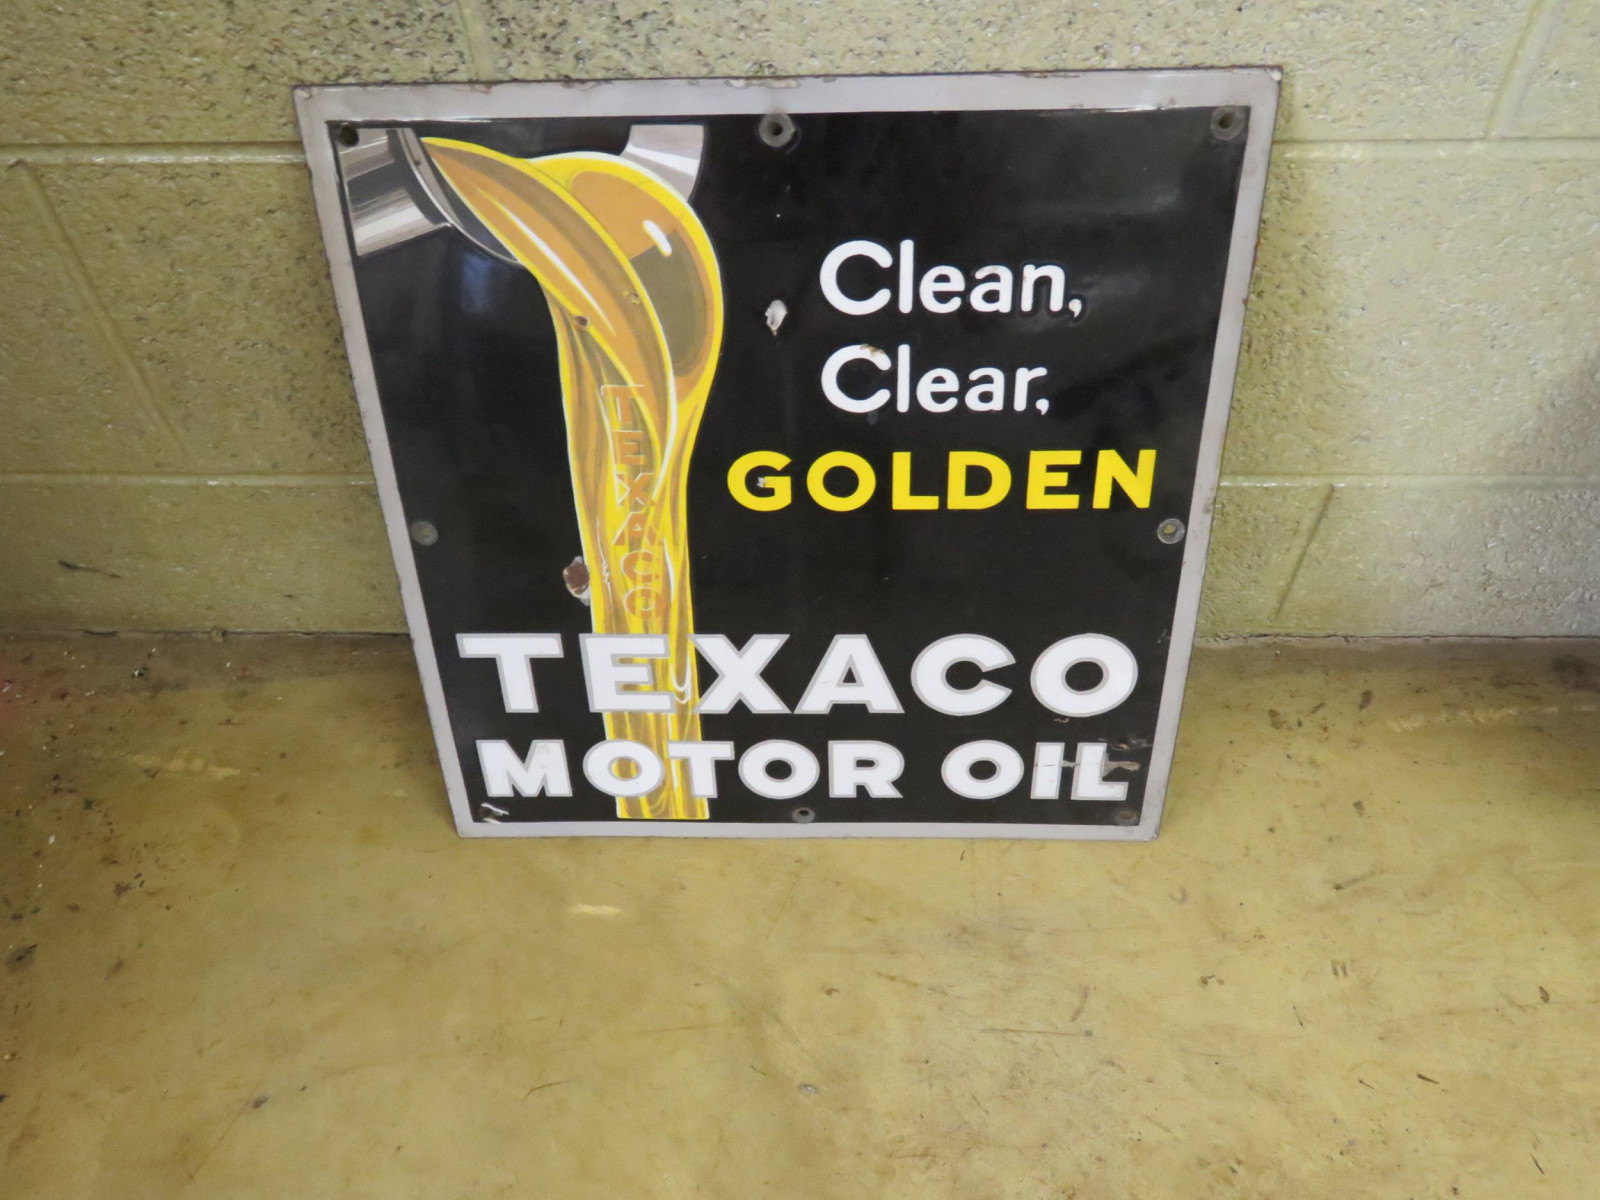 Texaco Motor Oil Porcelain Sign - Image 1